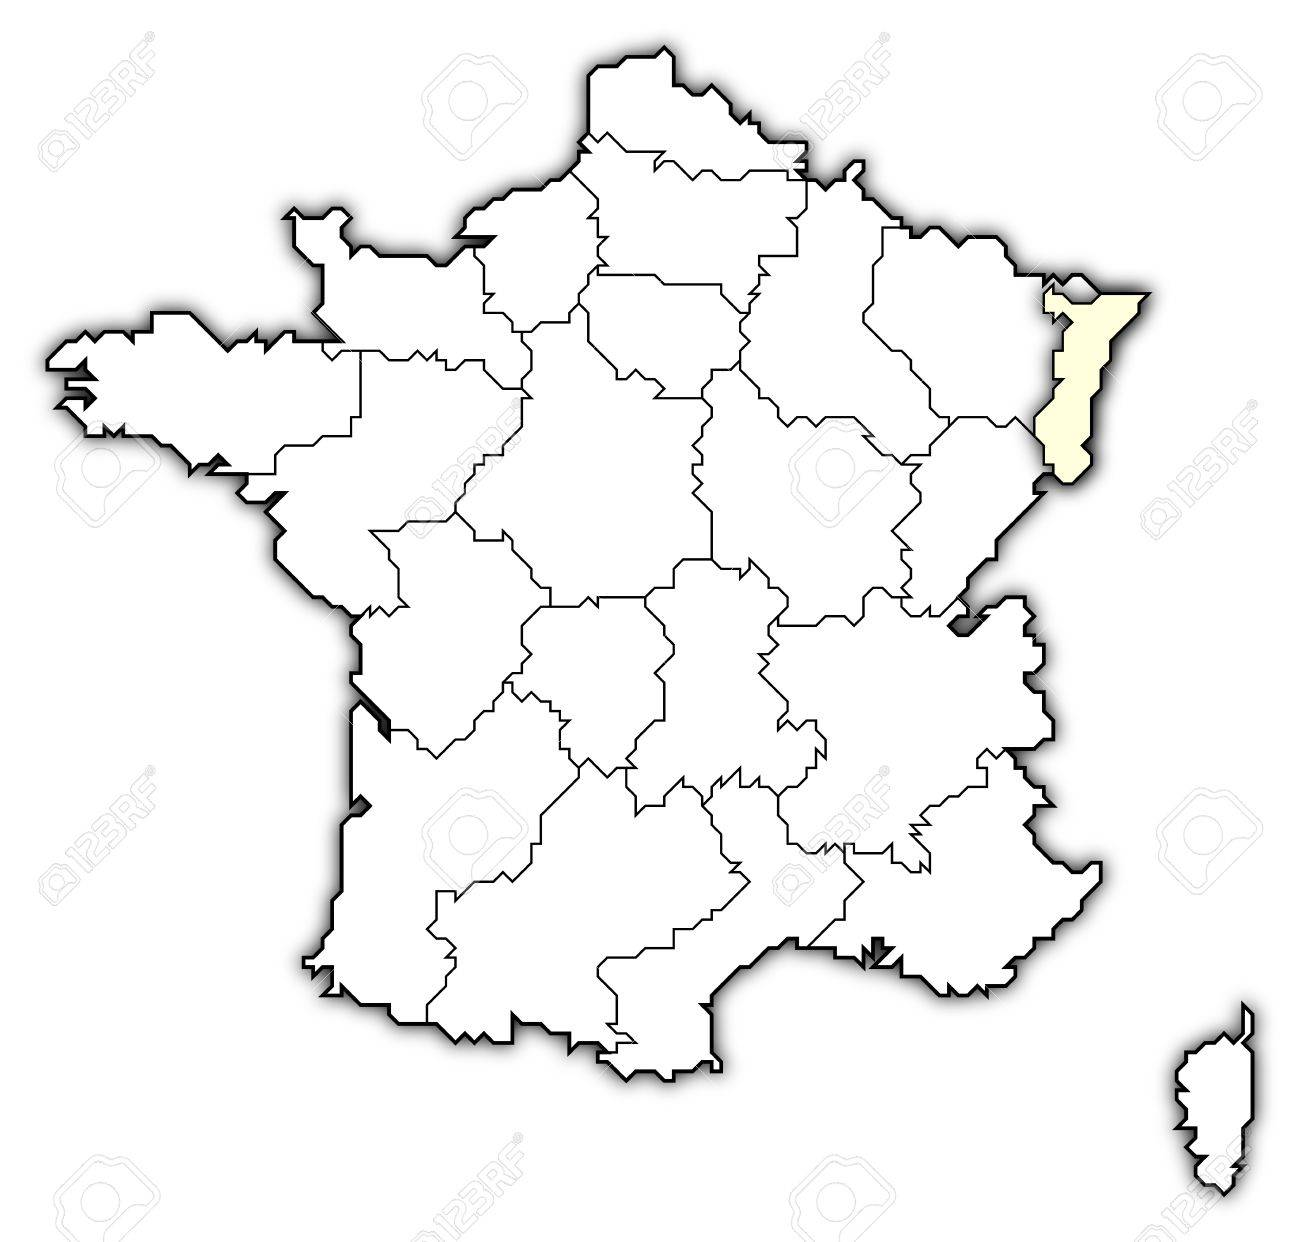 Map Of France Drawing.Political Map Of France With The Several Regions Where Alsace